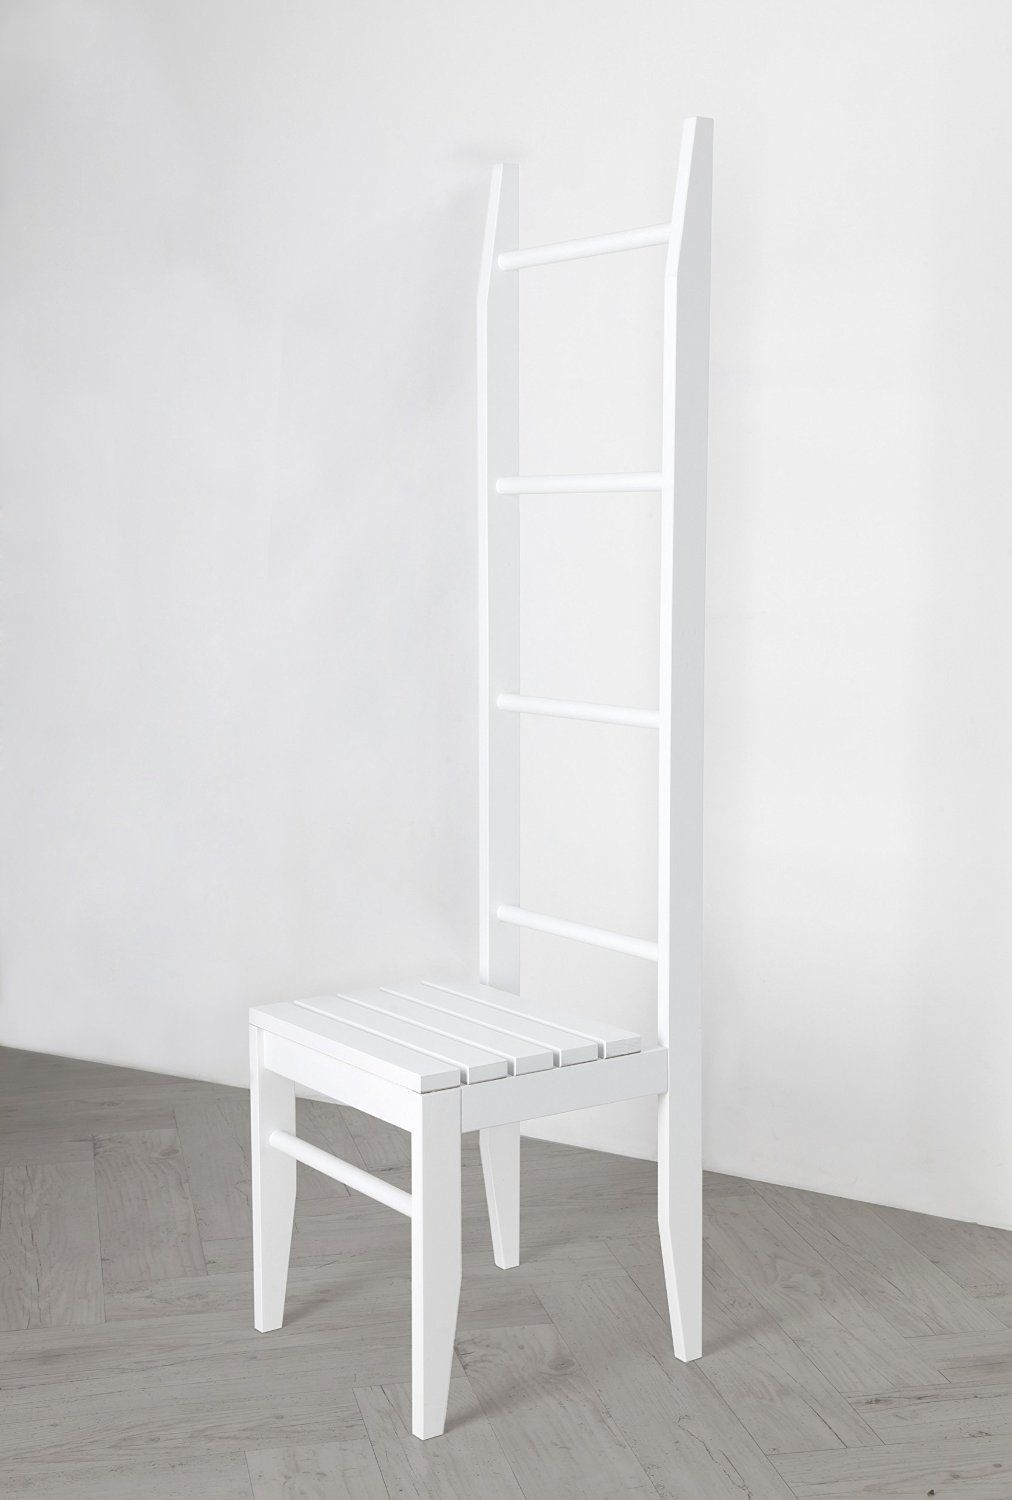 Herrendiener Modern Kleiderstuhl Garderobe Flur Home Decor Furniture Und Ladder Decor